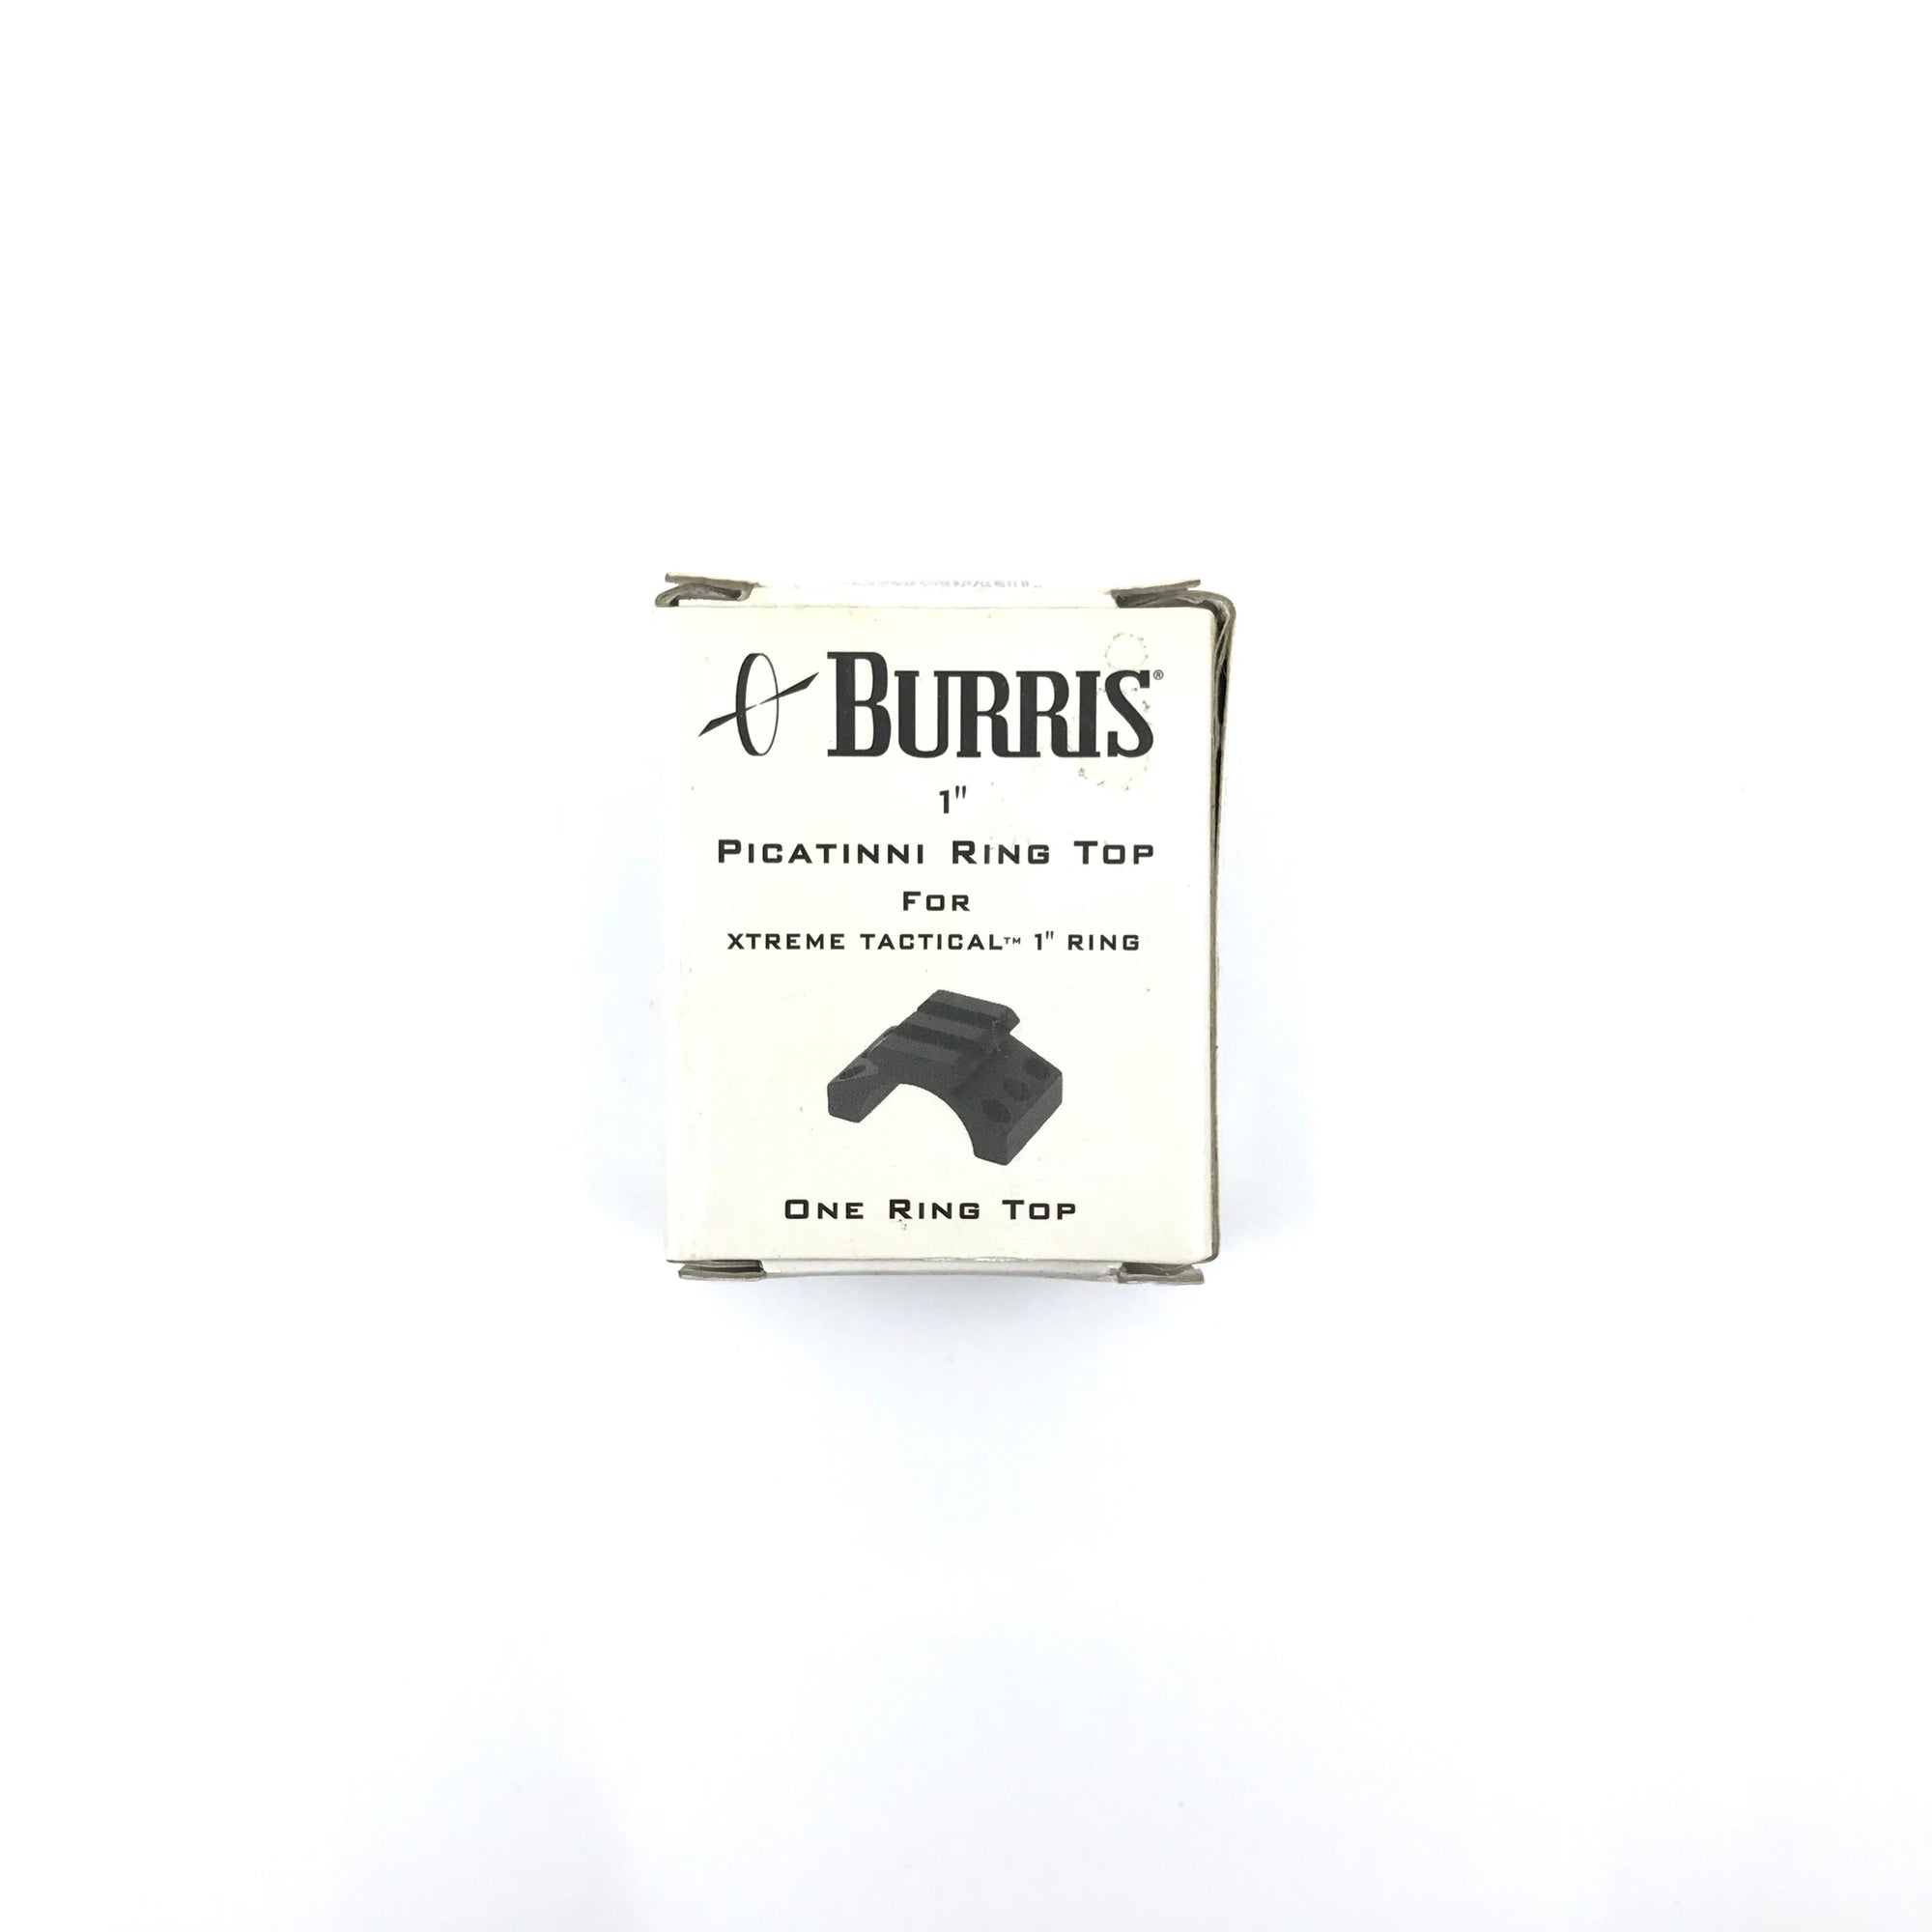 "Burris 420189 Picatinni Ring Top For Xtreme Tactical 1"" Ring"